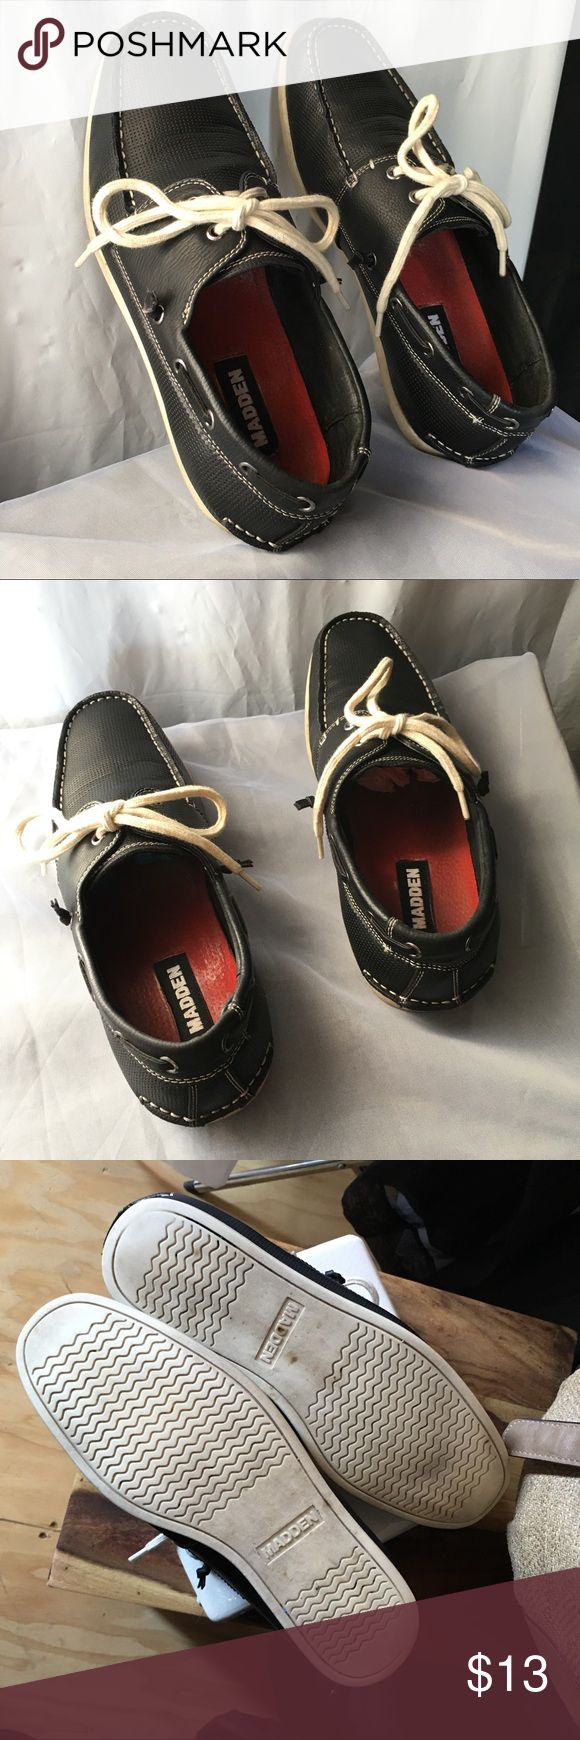 ♣️MADDEN SZ 9 ♣️MADDEN MEN SZ 9 . USED BUT SOLID. SPERRY STYLE BOAT LOAFERS Steve Madden Shoes Loafers & Slip-Ons